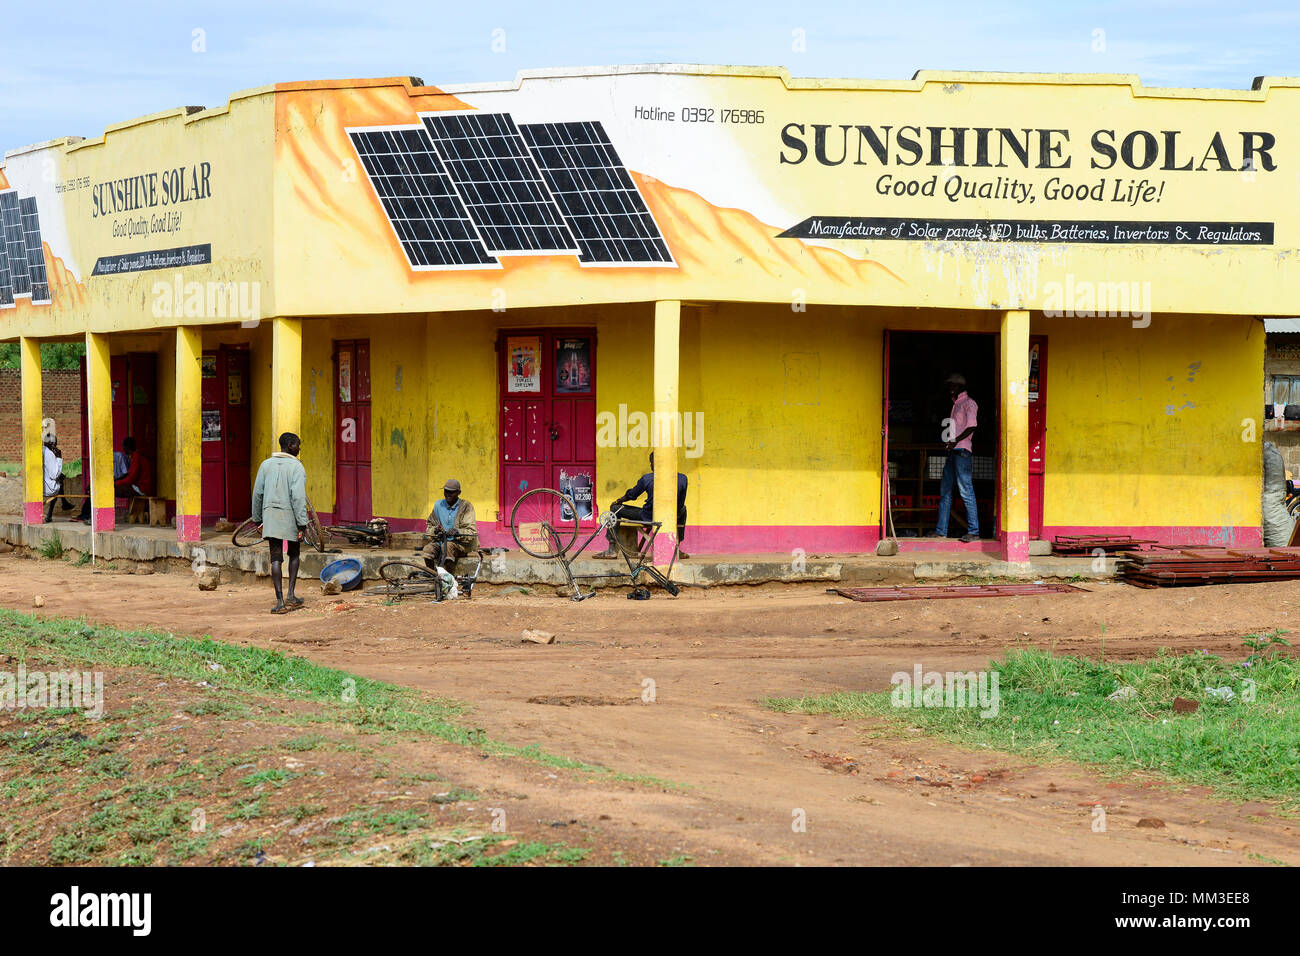 UGANDA, Karamoja, Kotido, Karamojong pastoral tribe, shop selling solar panels for power generation and bicycle repair - Stock Image